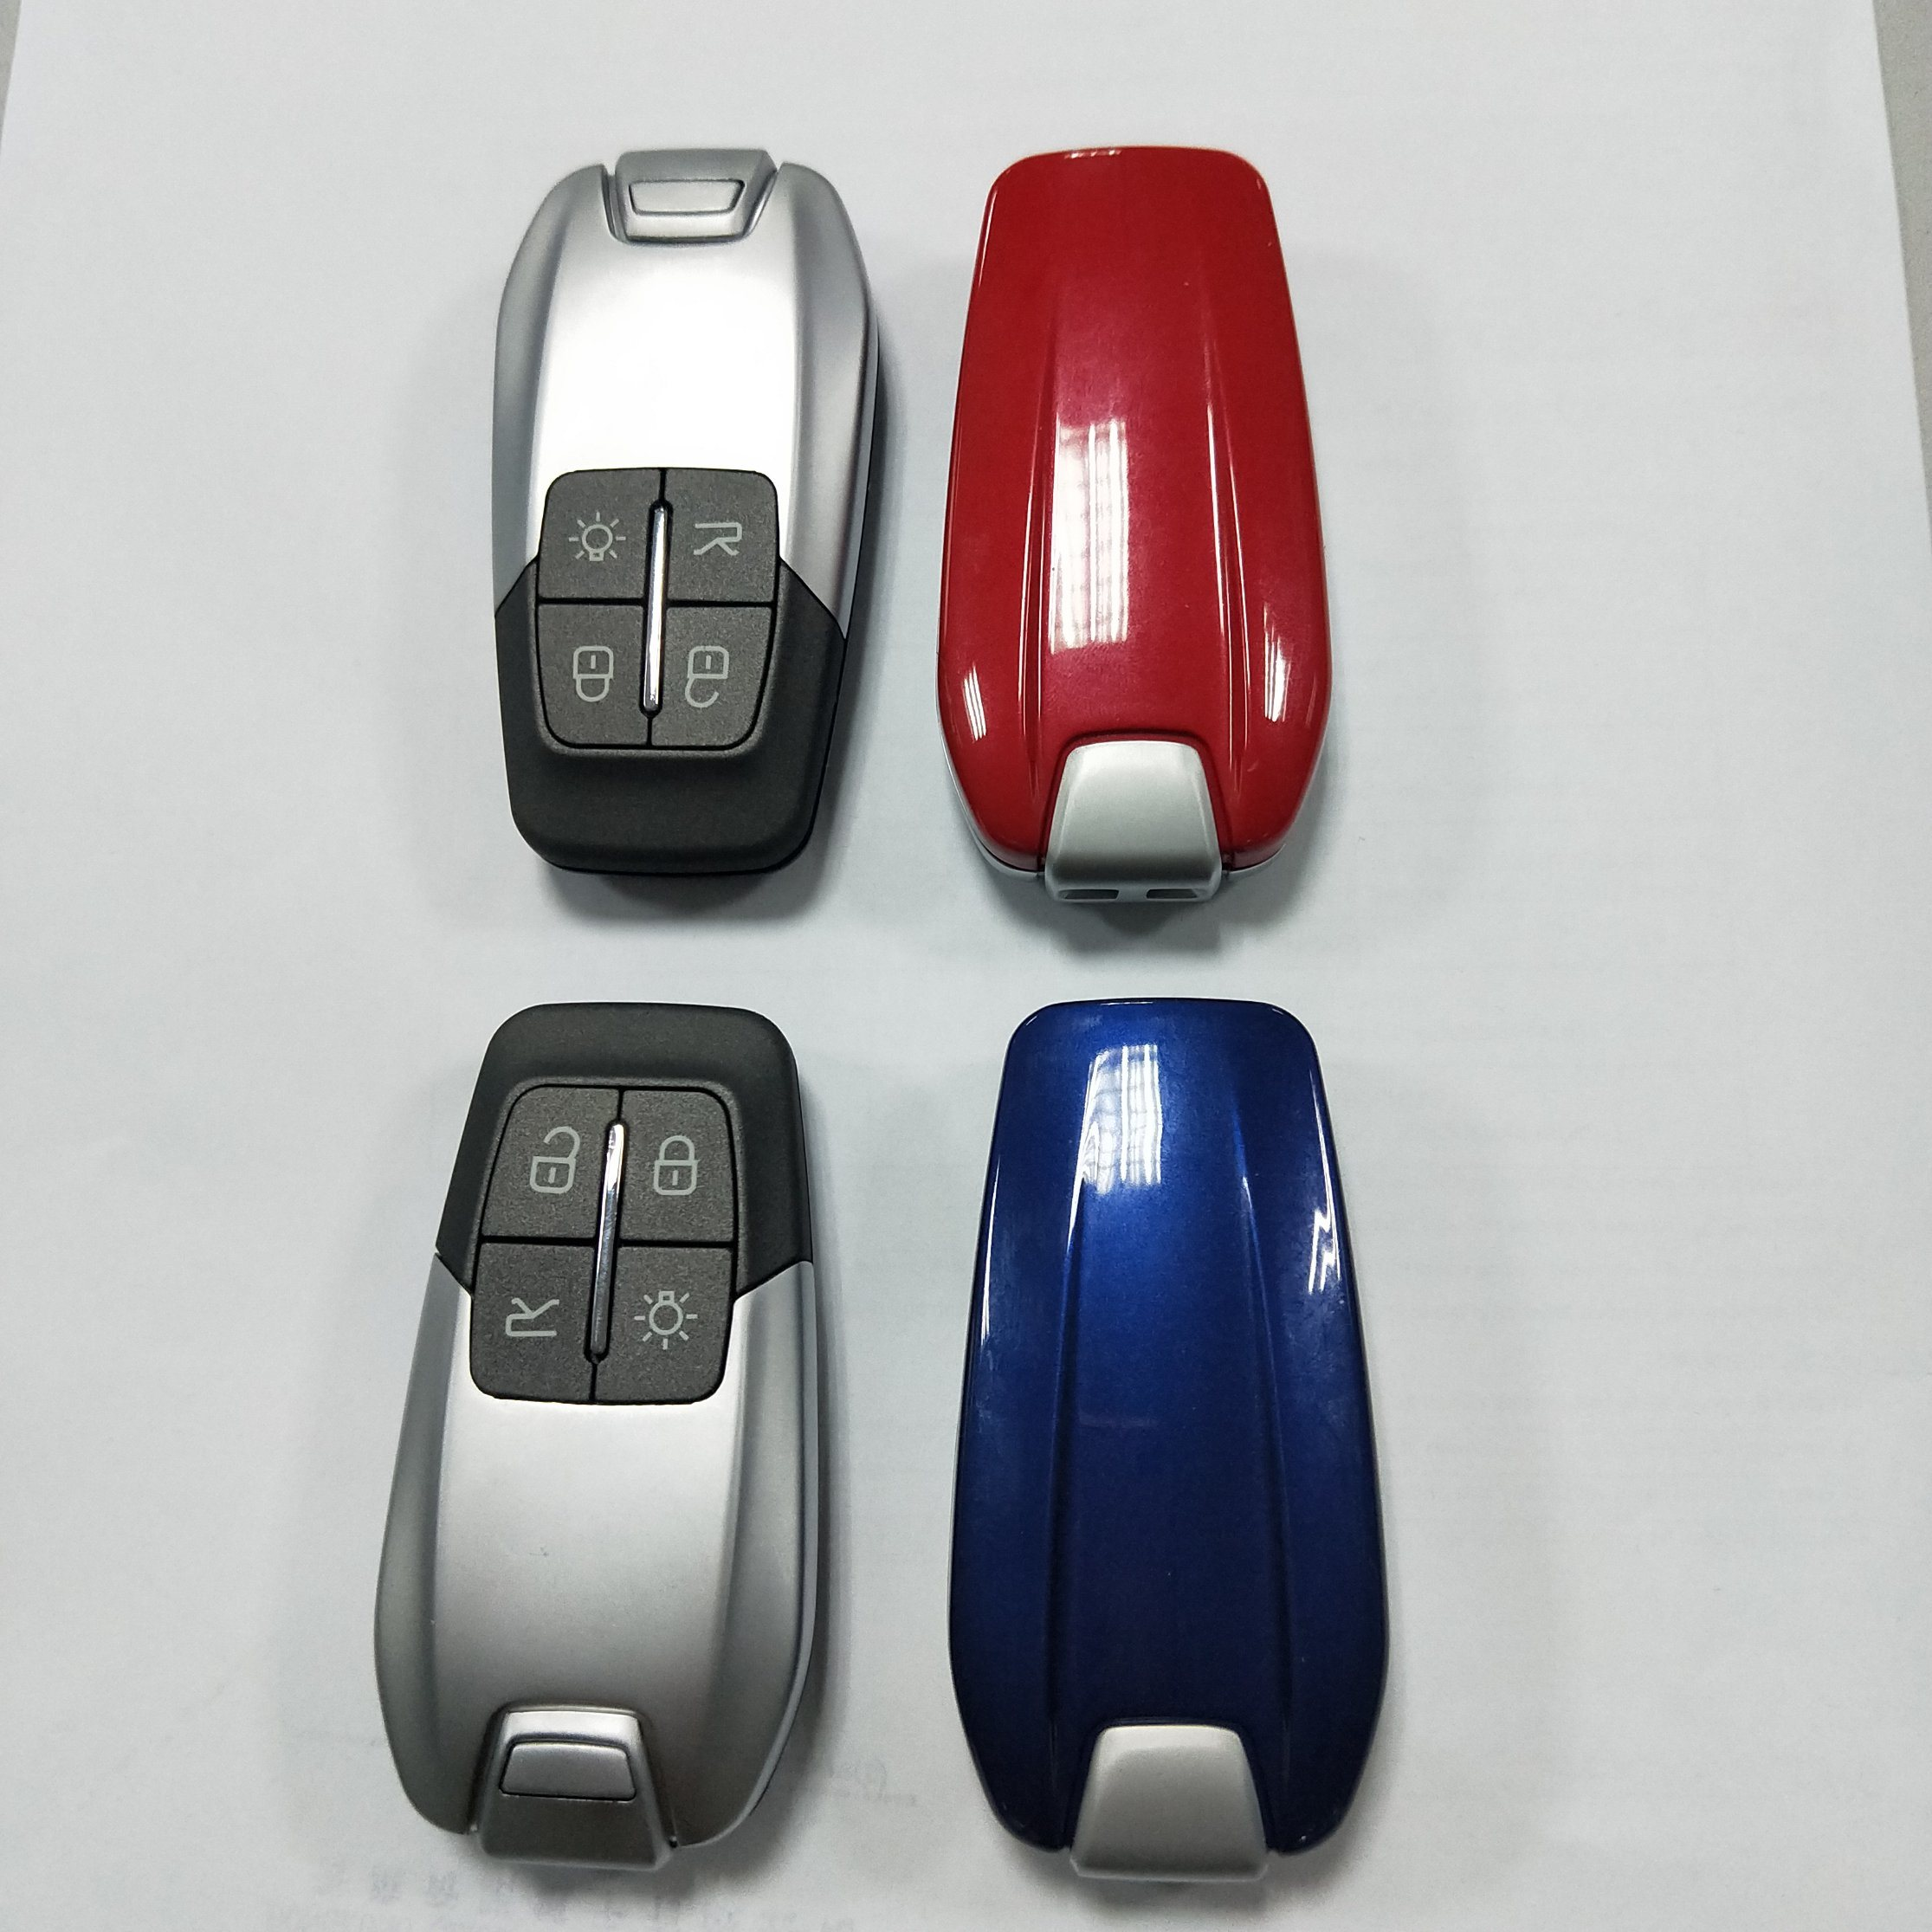 Smart Car Key Replacement >> Hot Item Wholesale Car Key Replacement In Blank Remote For Smart Car Key